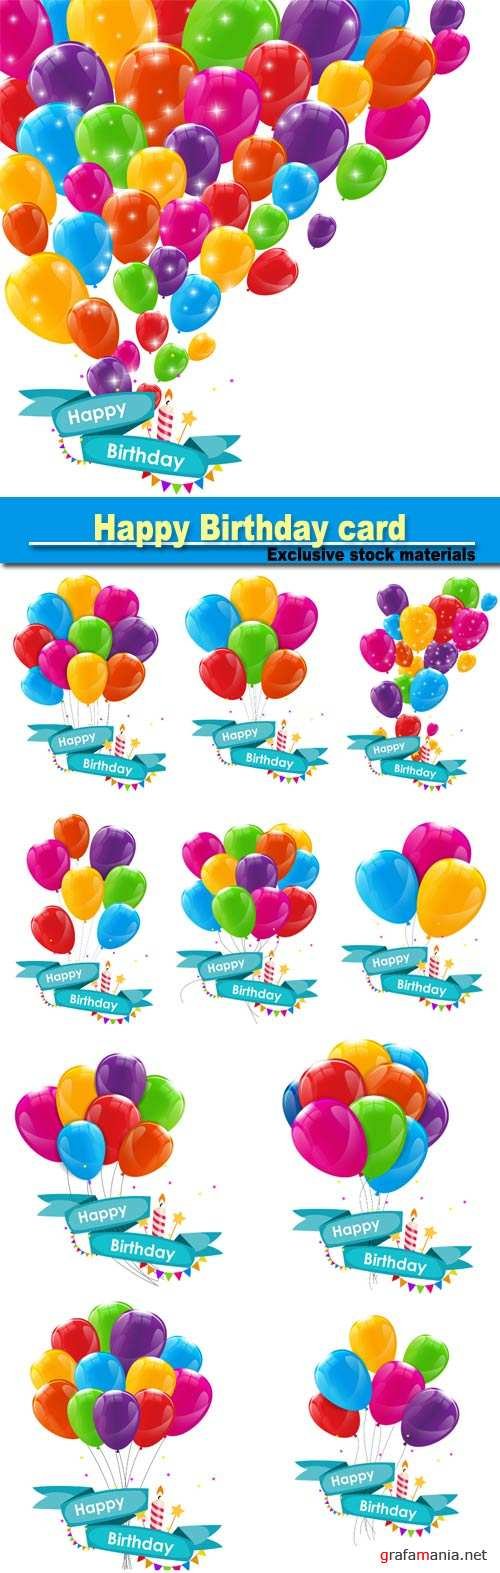 Happy Birthday card template with balloons, ribbon and candle